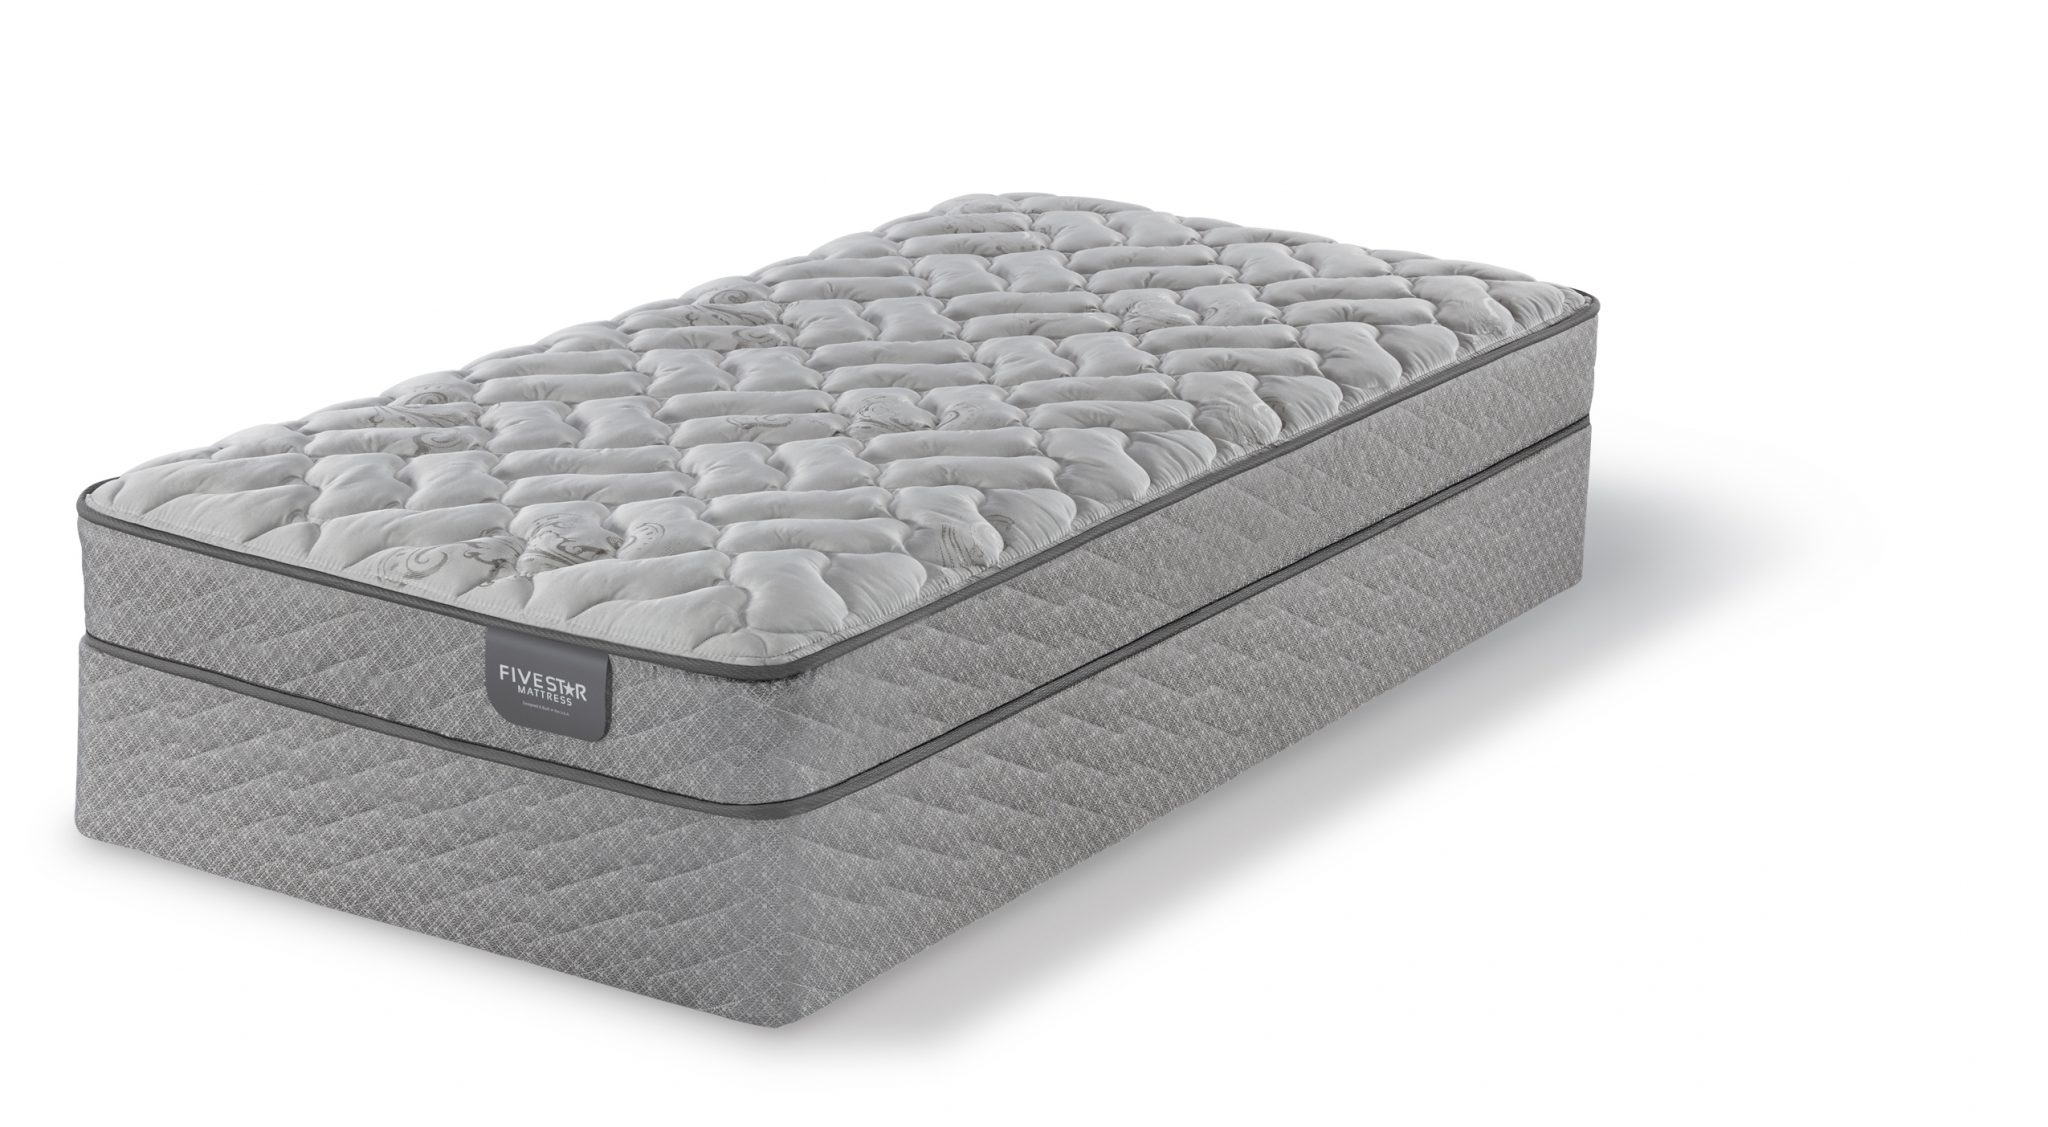 five star mattress best mattress las vegas nv st george ut